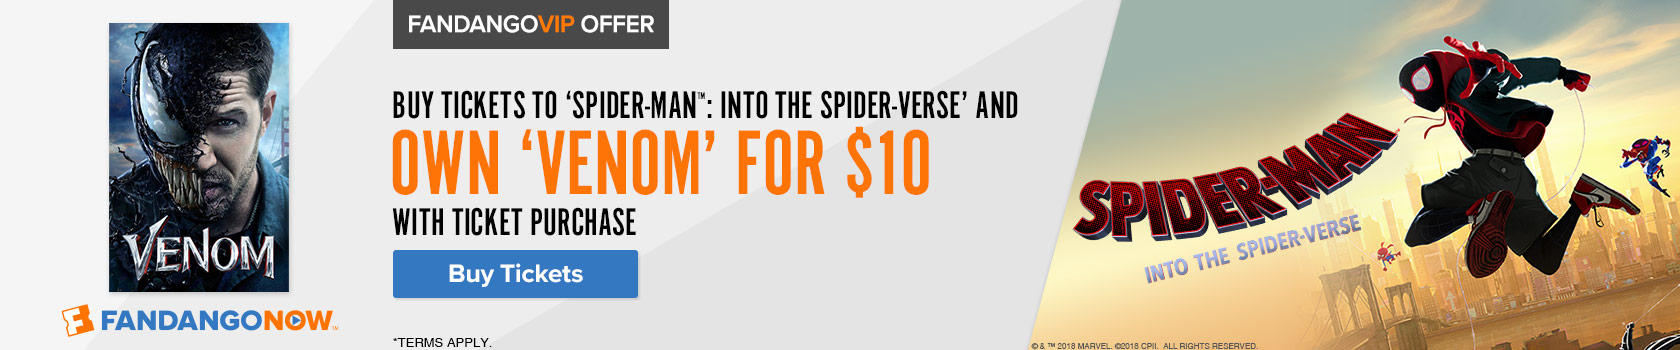 Fandango 'Spider-Man: Into the Spider-Verse' Gift with Purchase